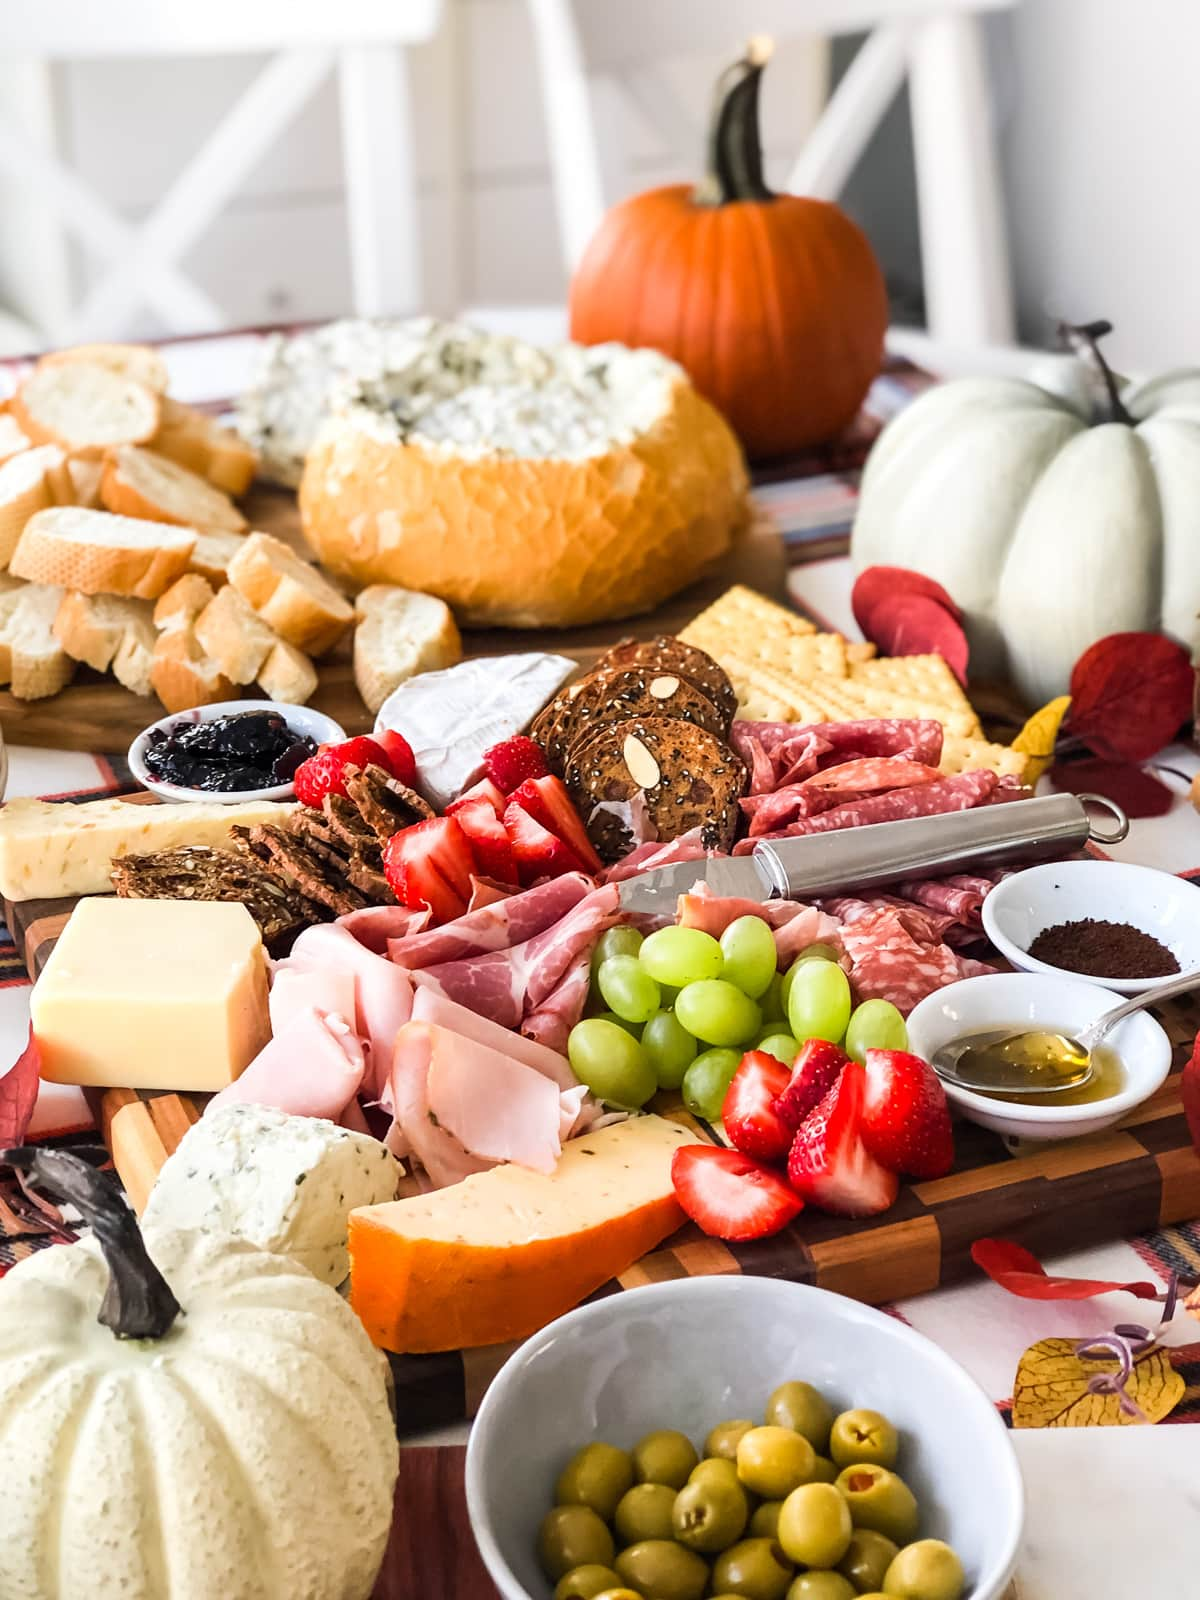 A table full of charcuterie, fruit and appetizers